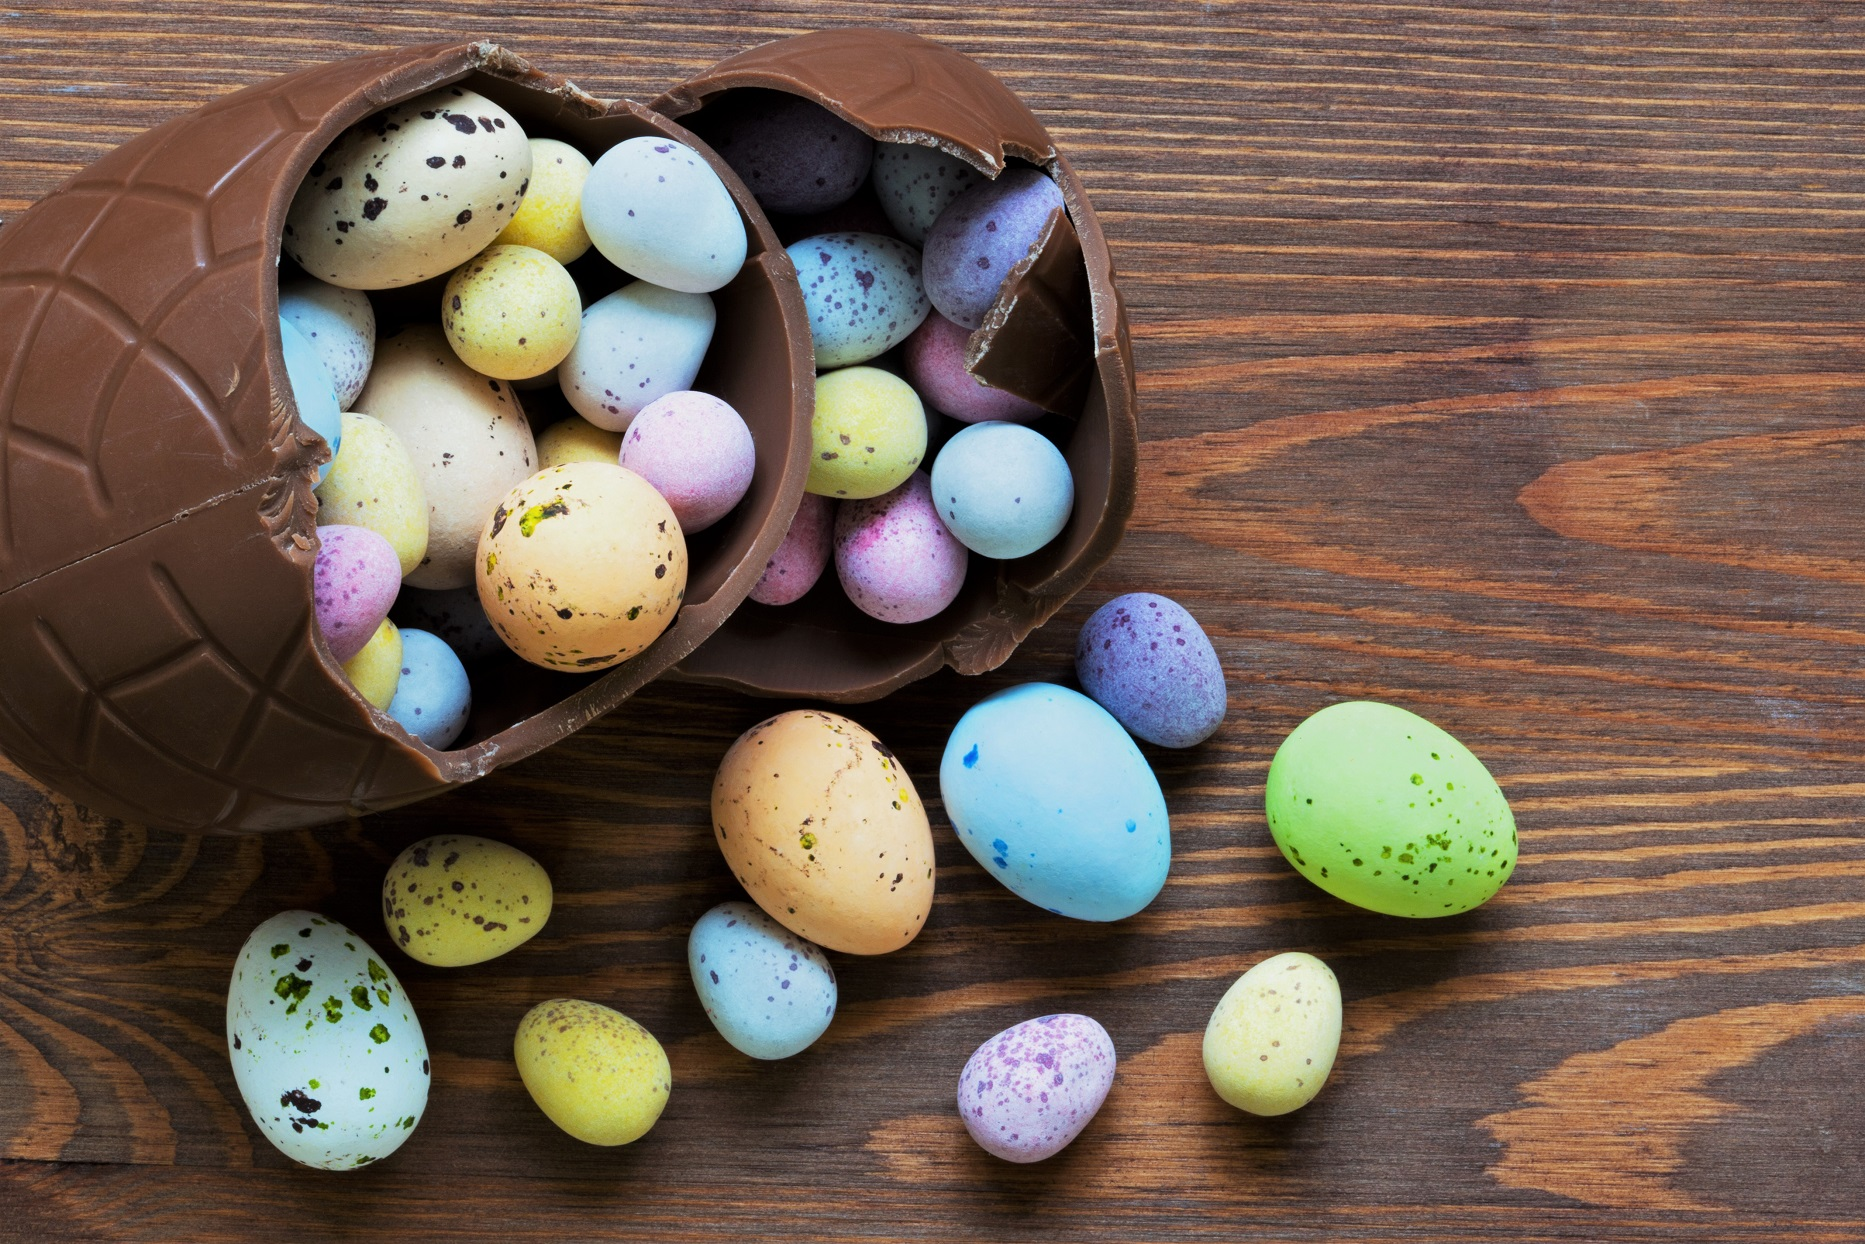 Is Your Teen Too Old for Treats From the Easter Bunny?